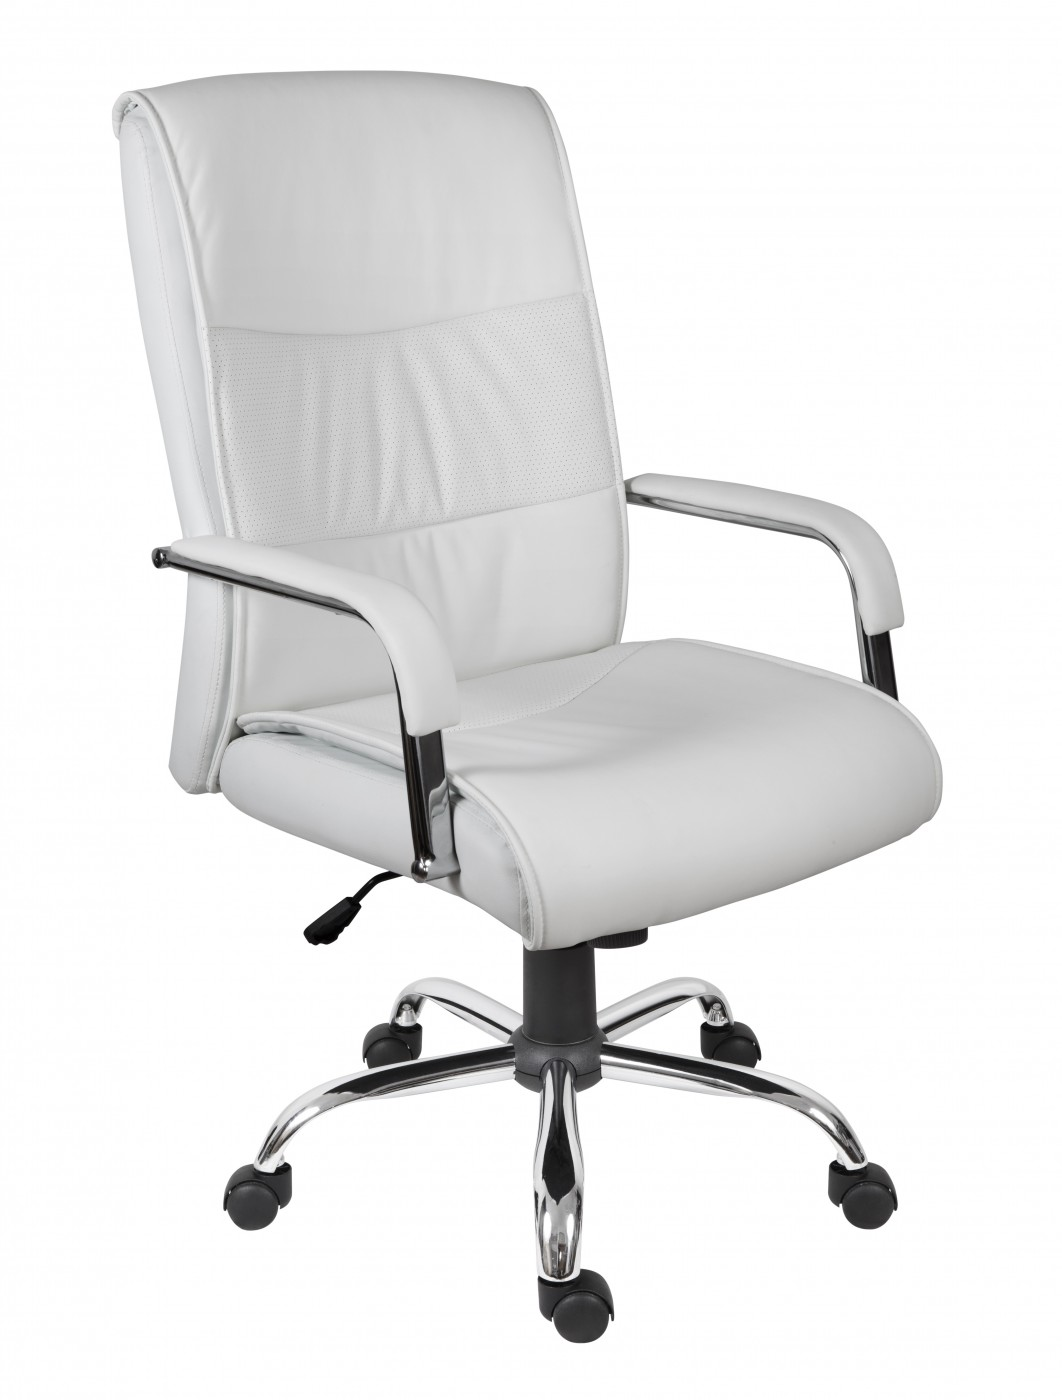 luxury office chairs uk computer cheap chair 6901 121 furniture